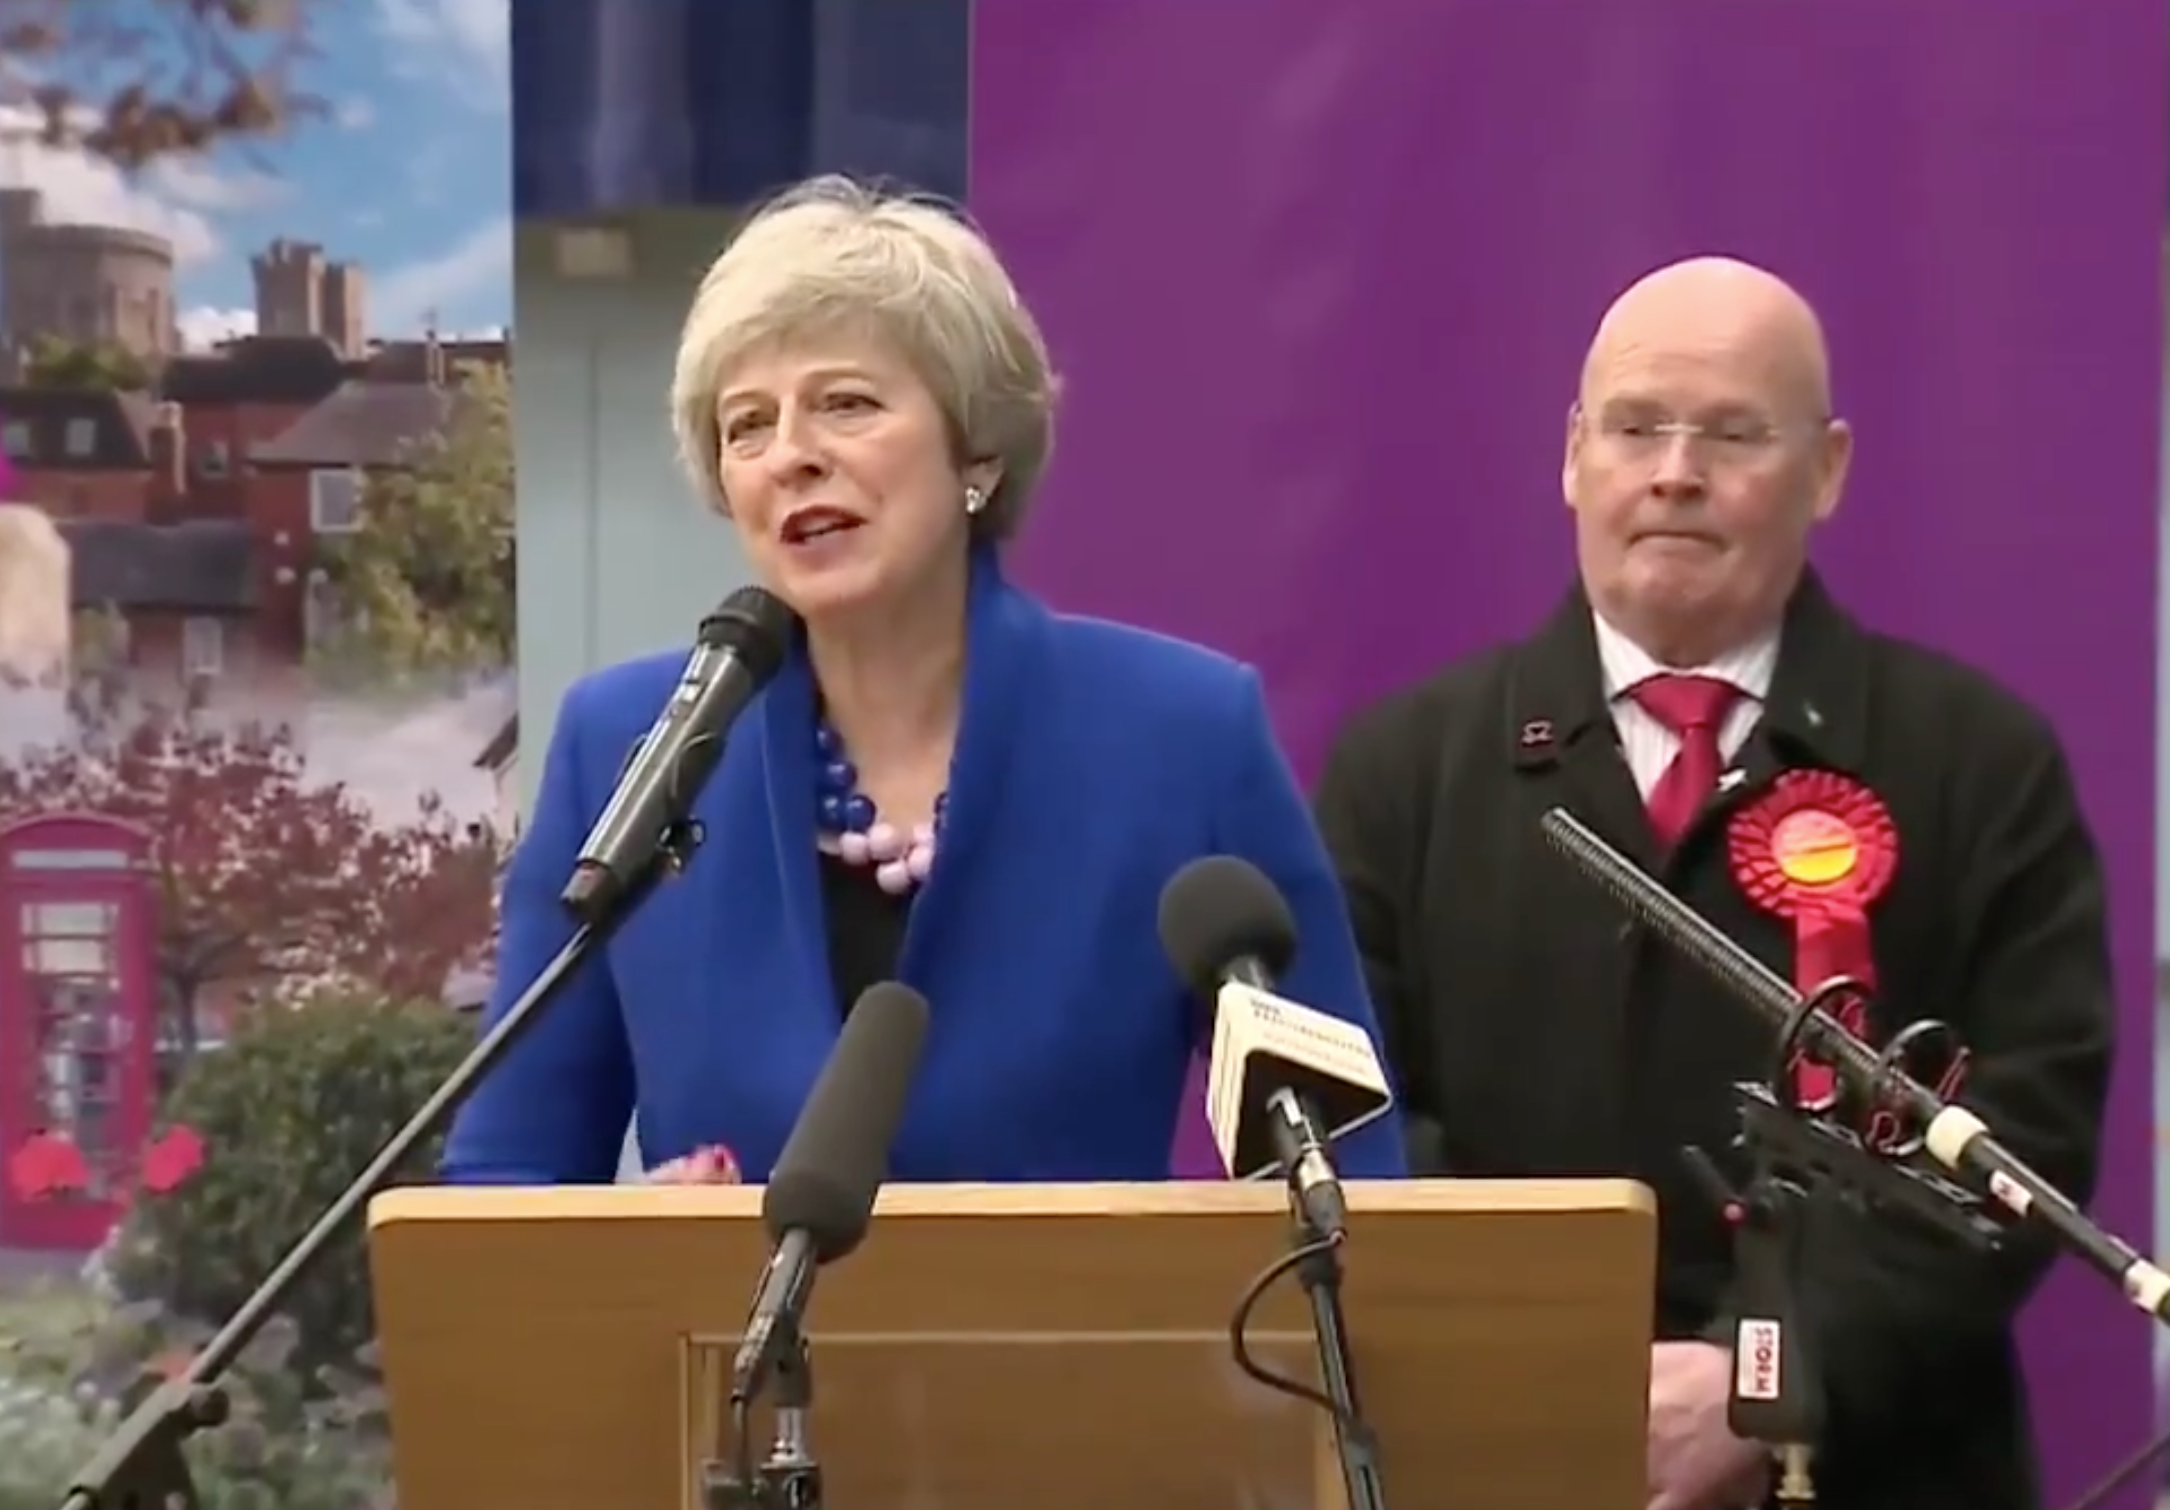 Theresa May thanked her constituents, polling staff, her husband and even police during her victory speech - but not Boris Johnson